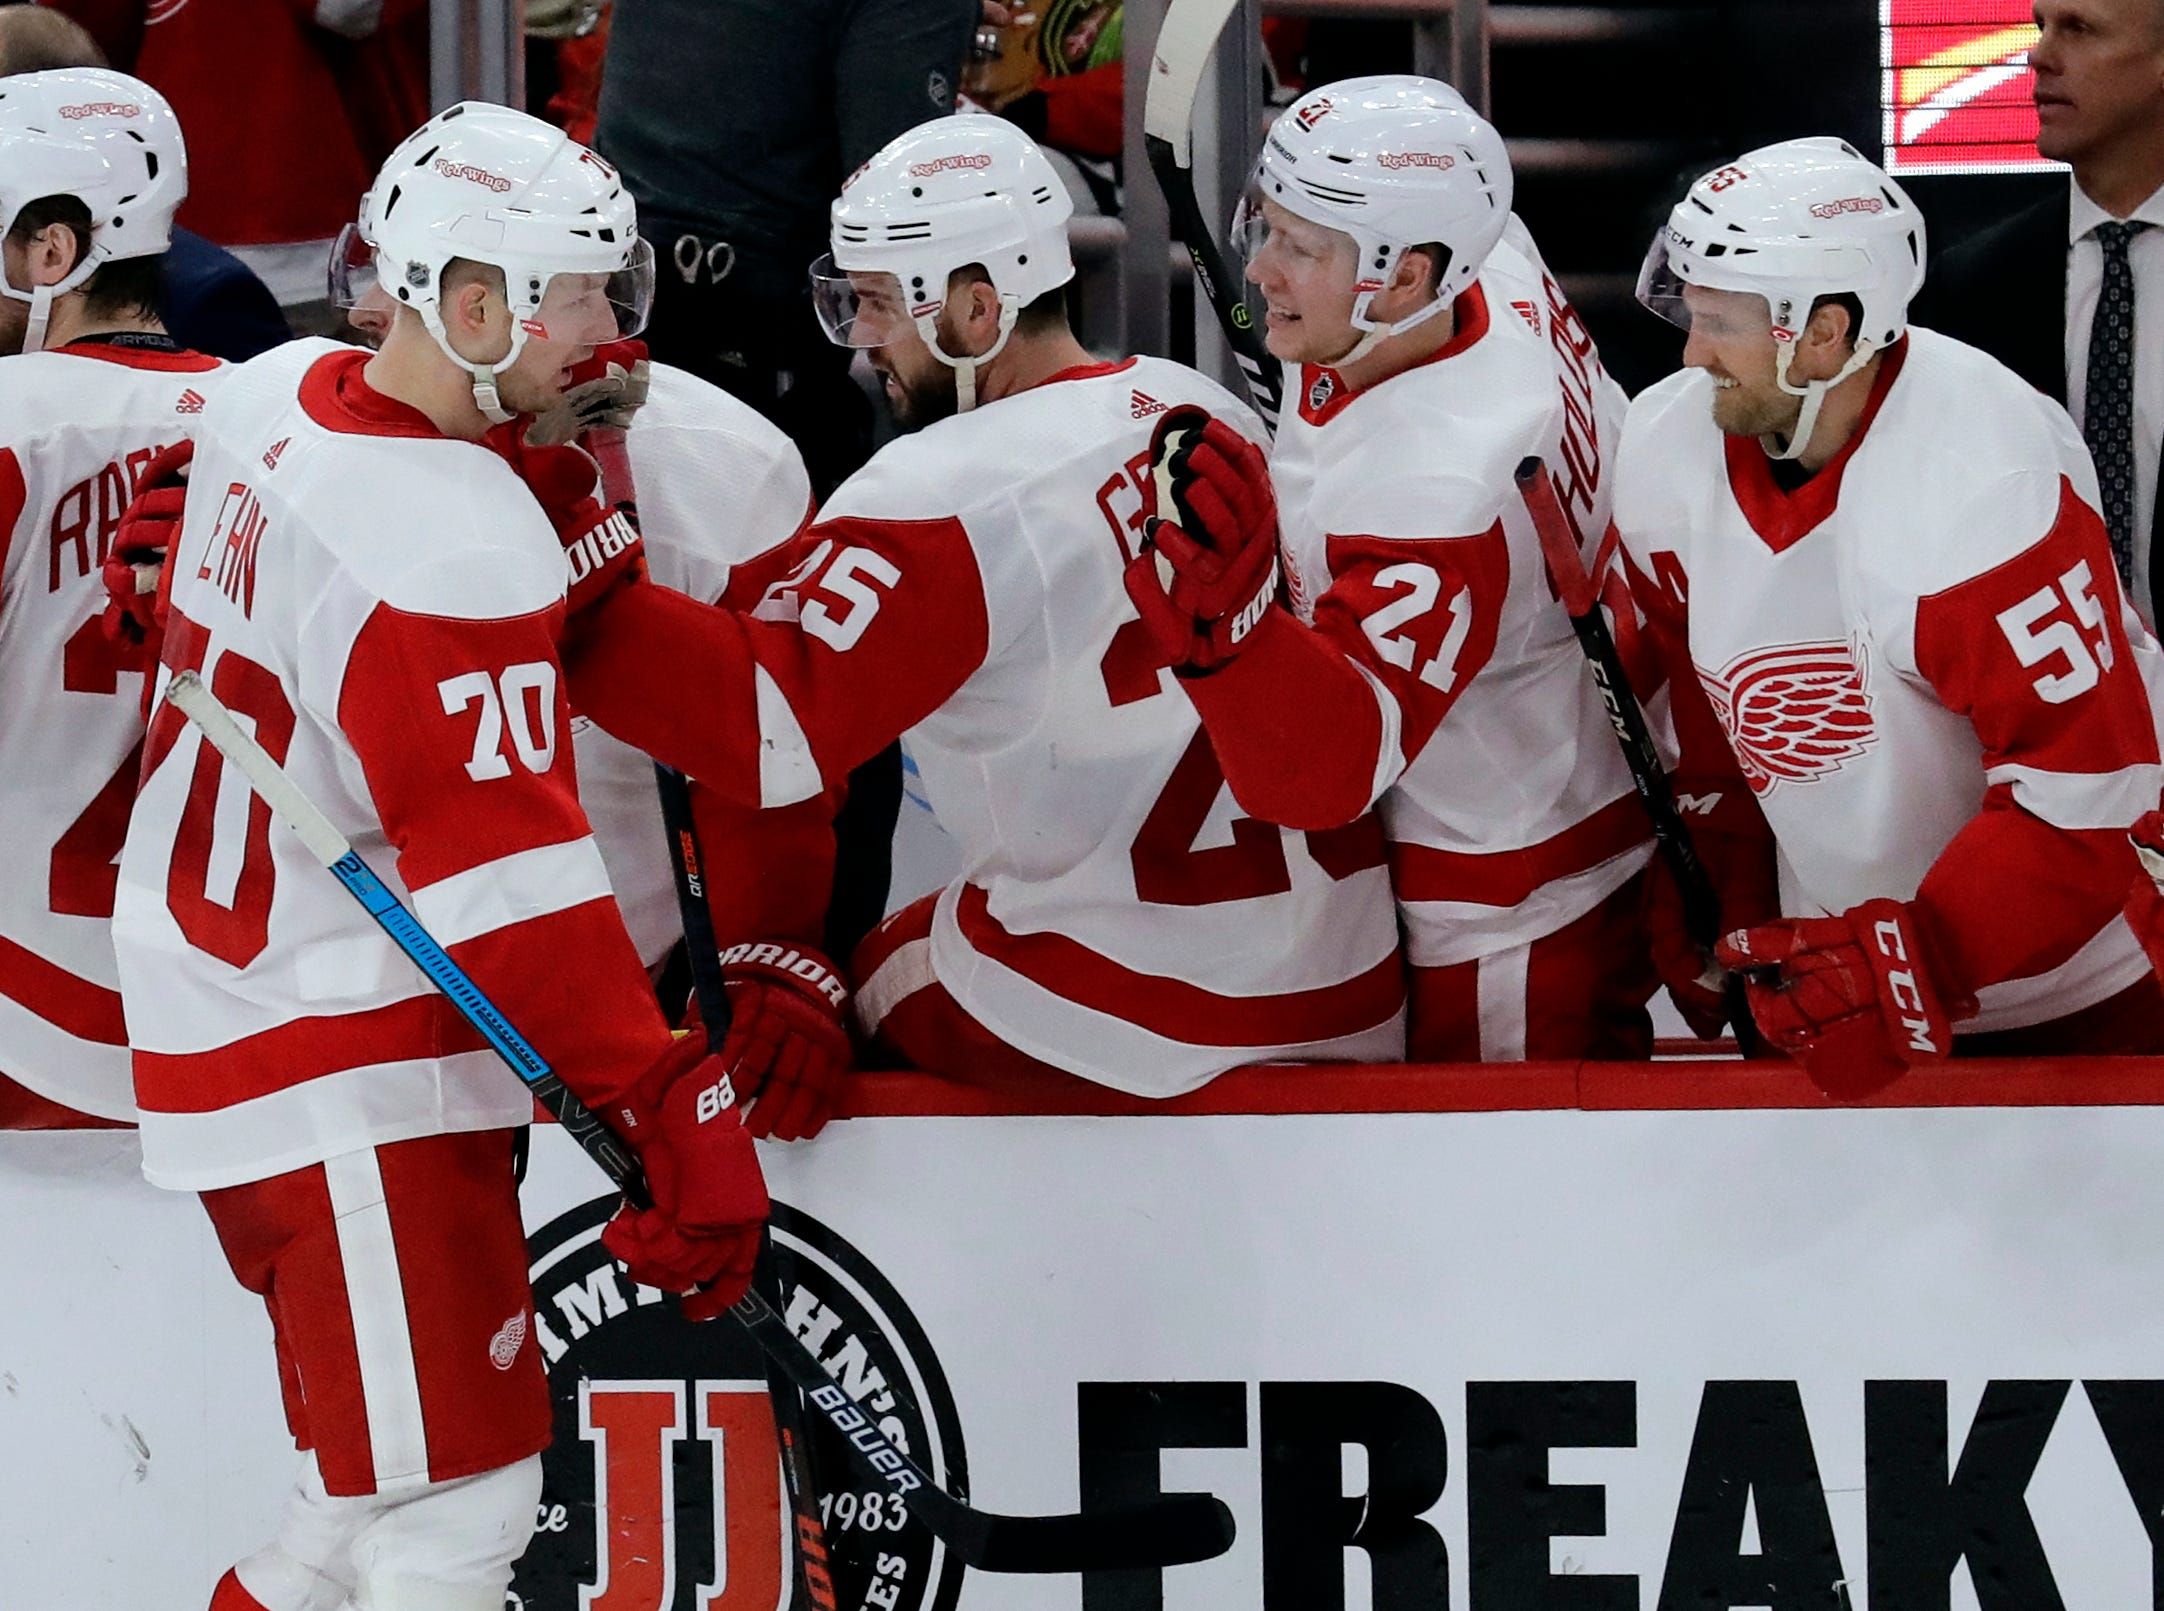 Detroit Red Wings center Christoffer Ehn (70) celebrates with teammates after scoring a goal against the Chicago Blackhawks during the second period.